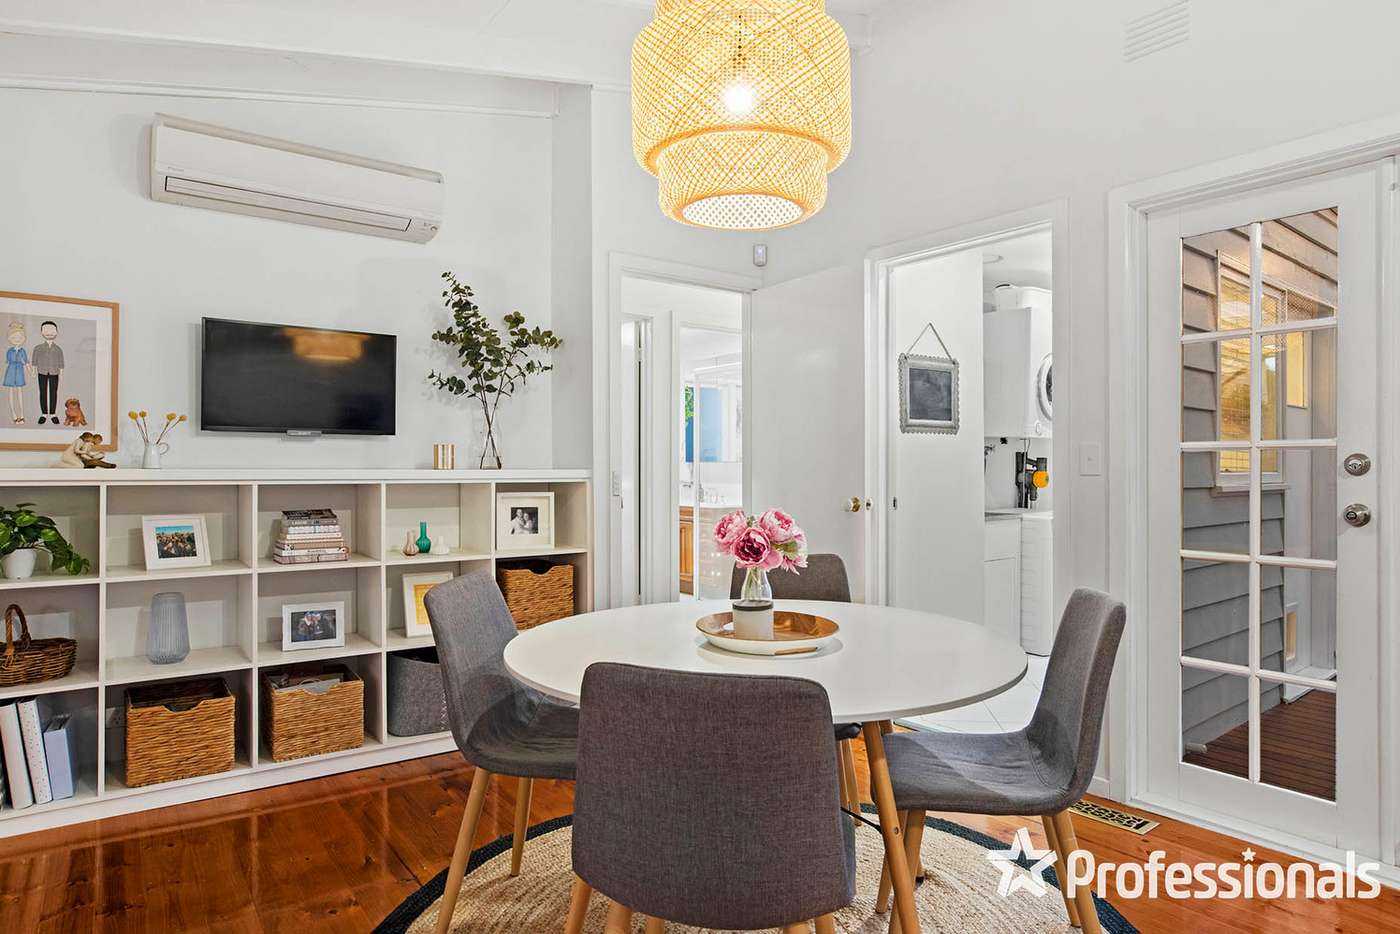 Fifth view of Homely house listing, 131 Belmont Road East, Croydon South VIC 3136